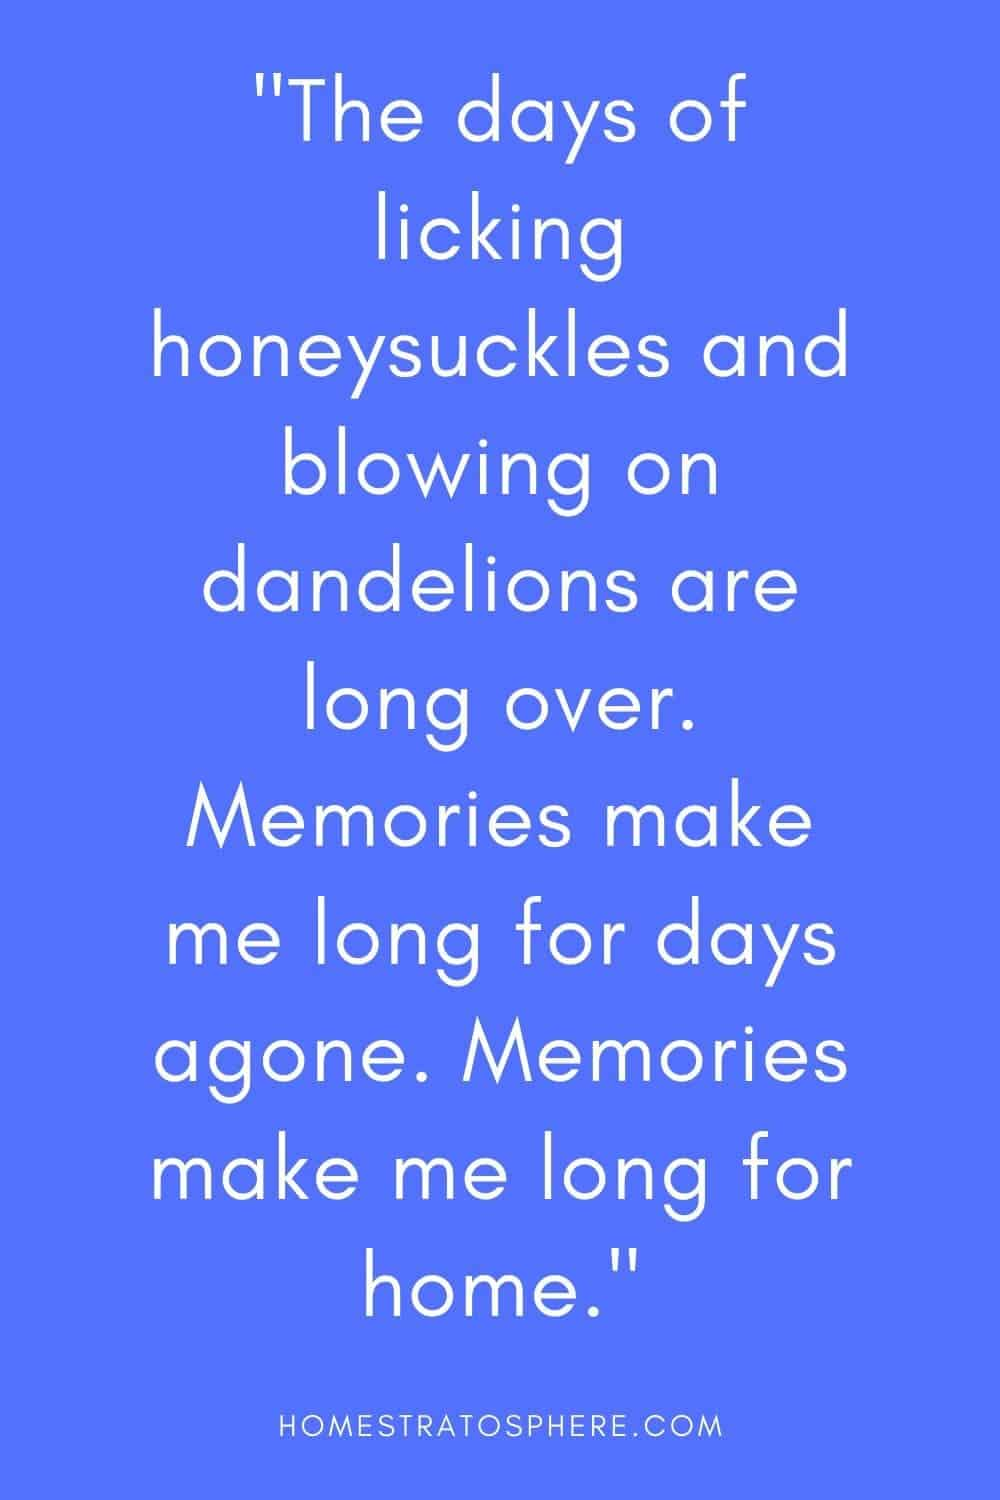 """""""The days of licking honeysuckles and blowing on dandelions are long over. Memories make me long for days agone. Memories make me long for home."""""""